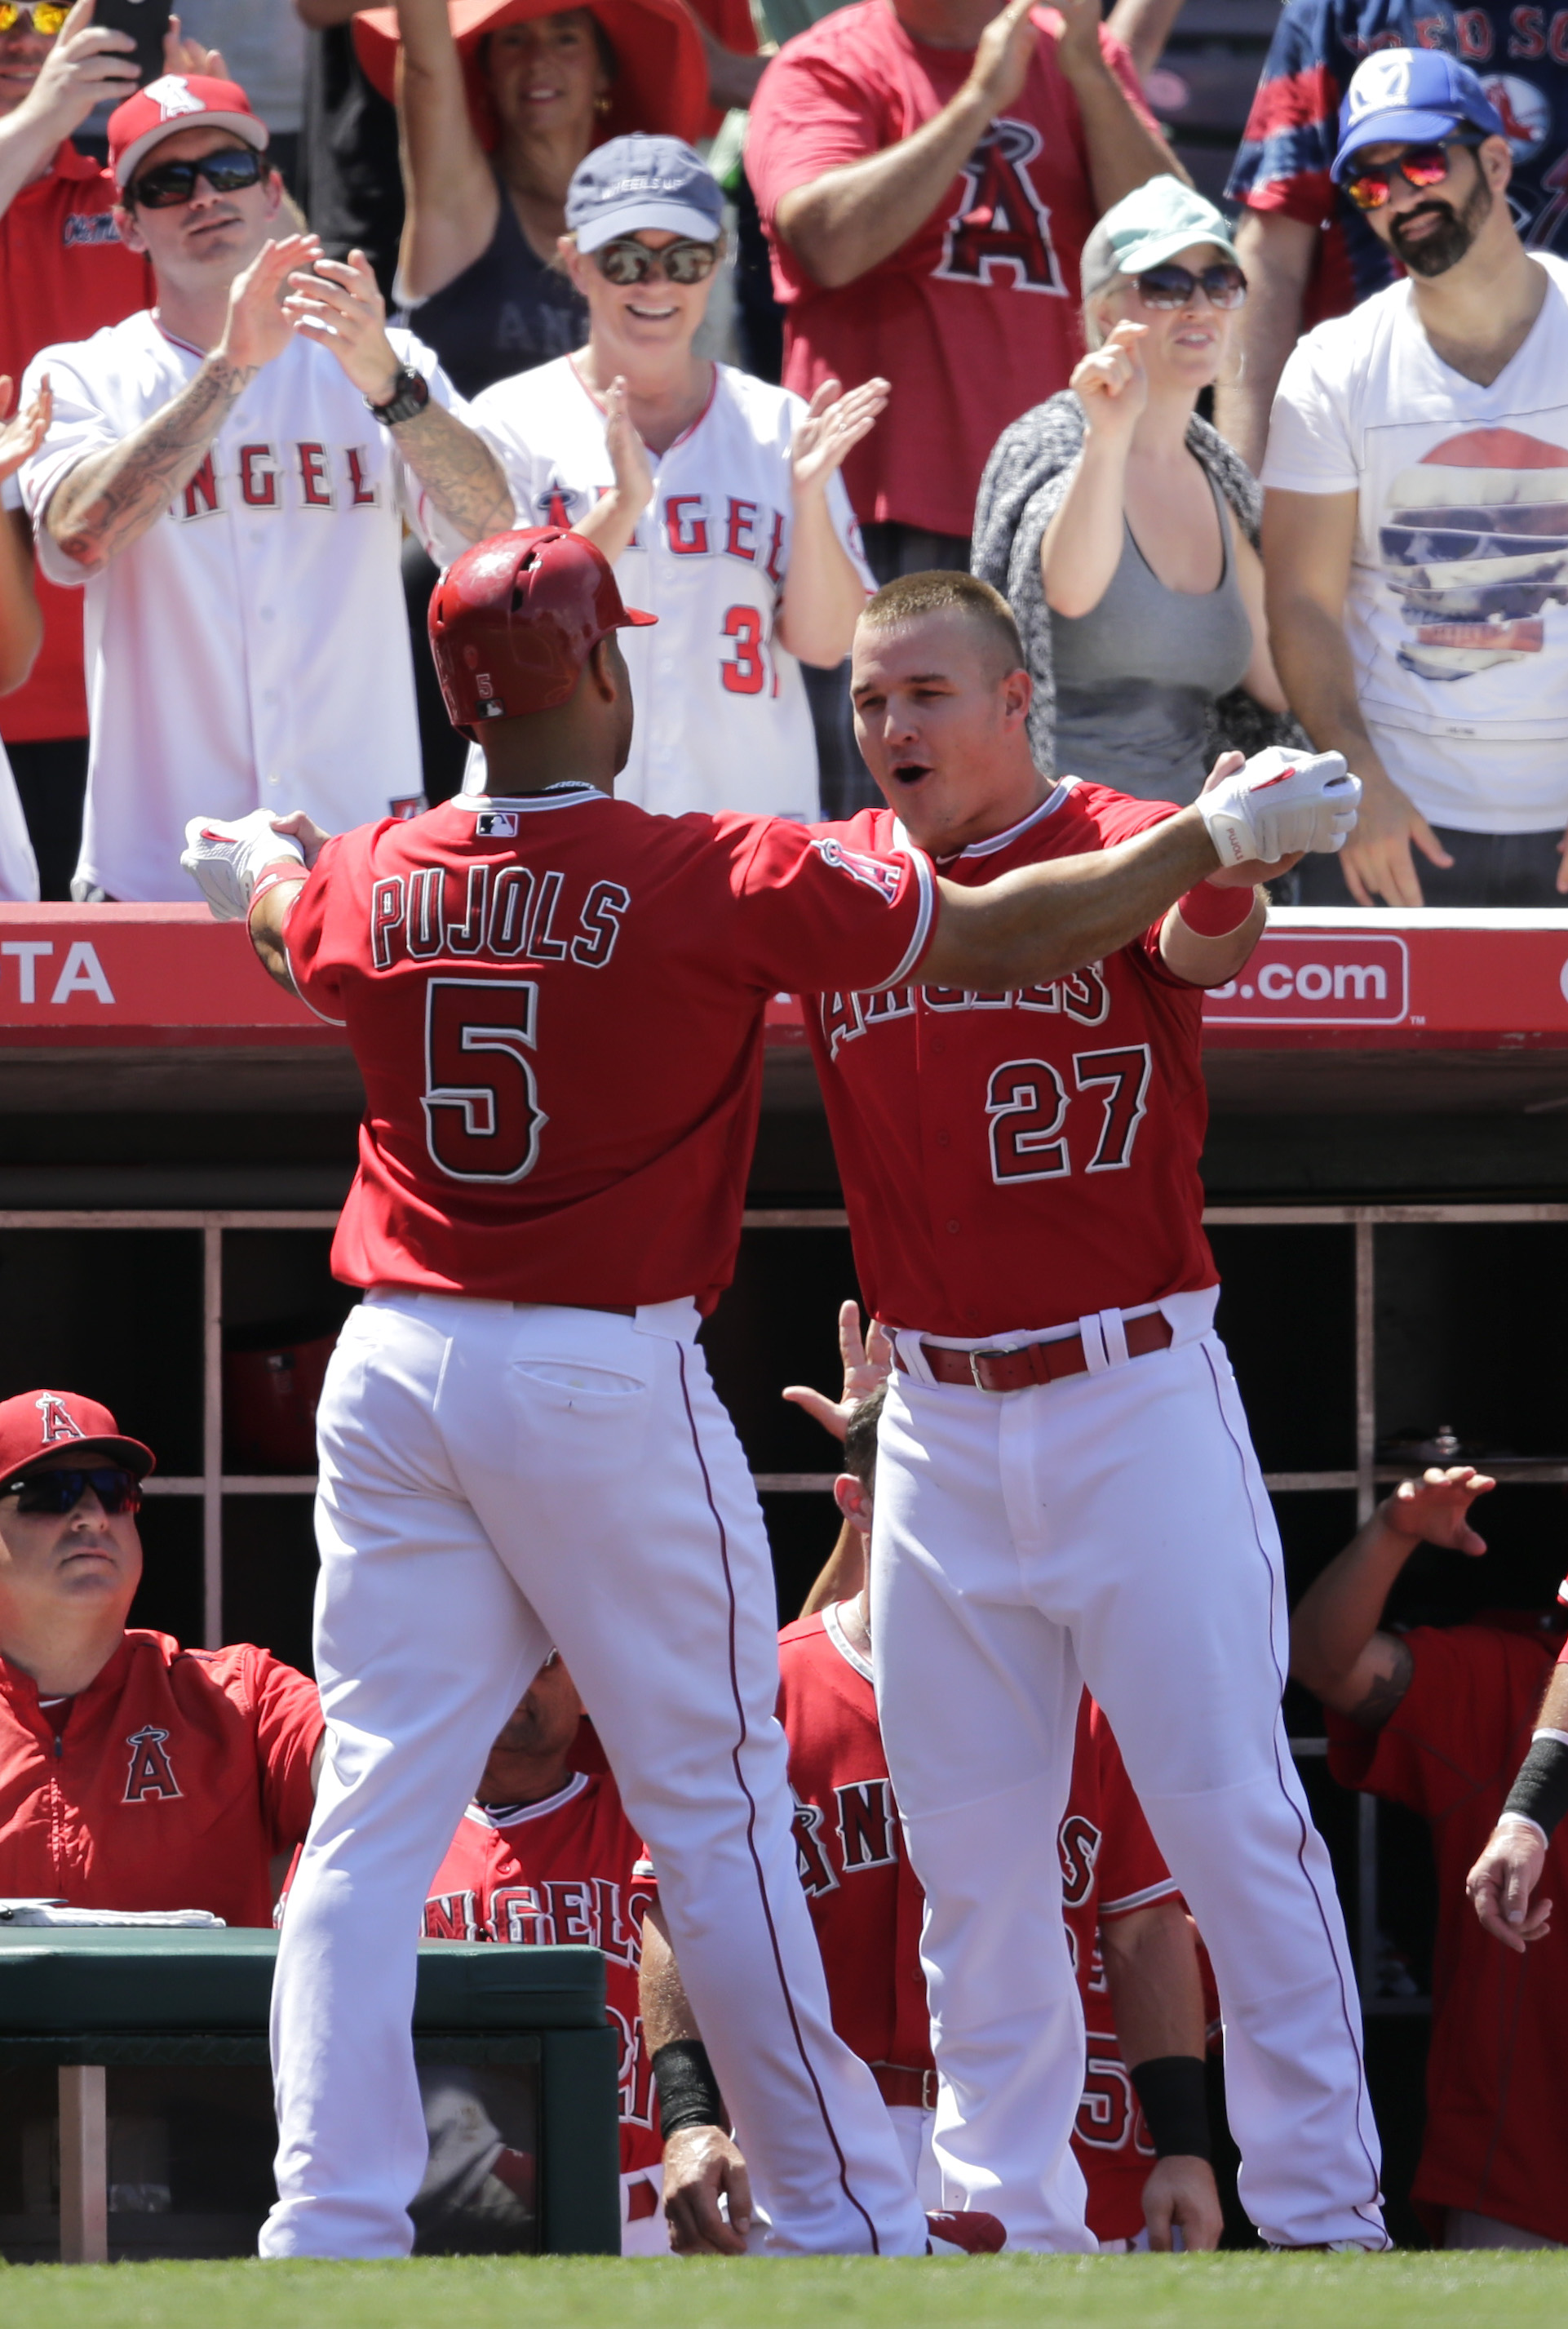 Los Angeles Angels' Albert Pujols, left, celebrates his home run with Mike Trout during the second inning of a baseball game against the Boston Red Sox, Monday, July 20, 2015, in Anaheim, Calif. (AP Photo/Jae C. Hong)